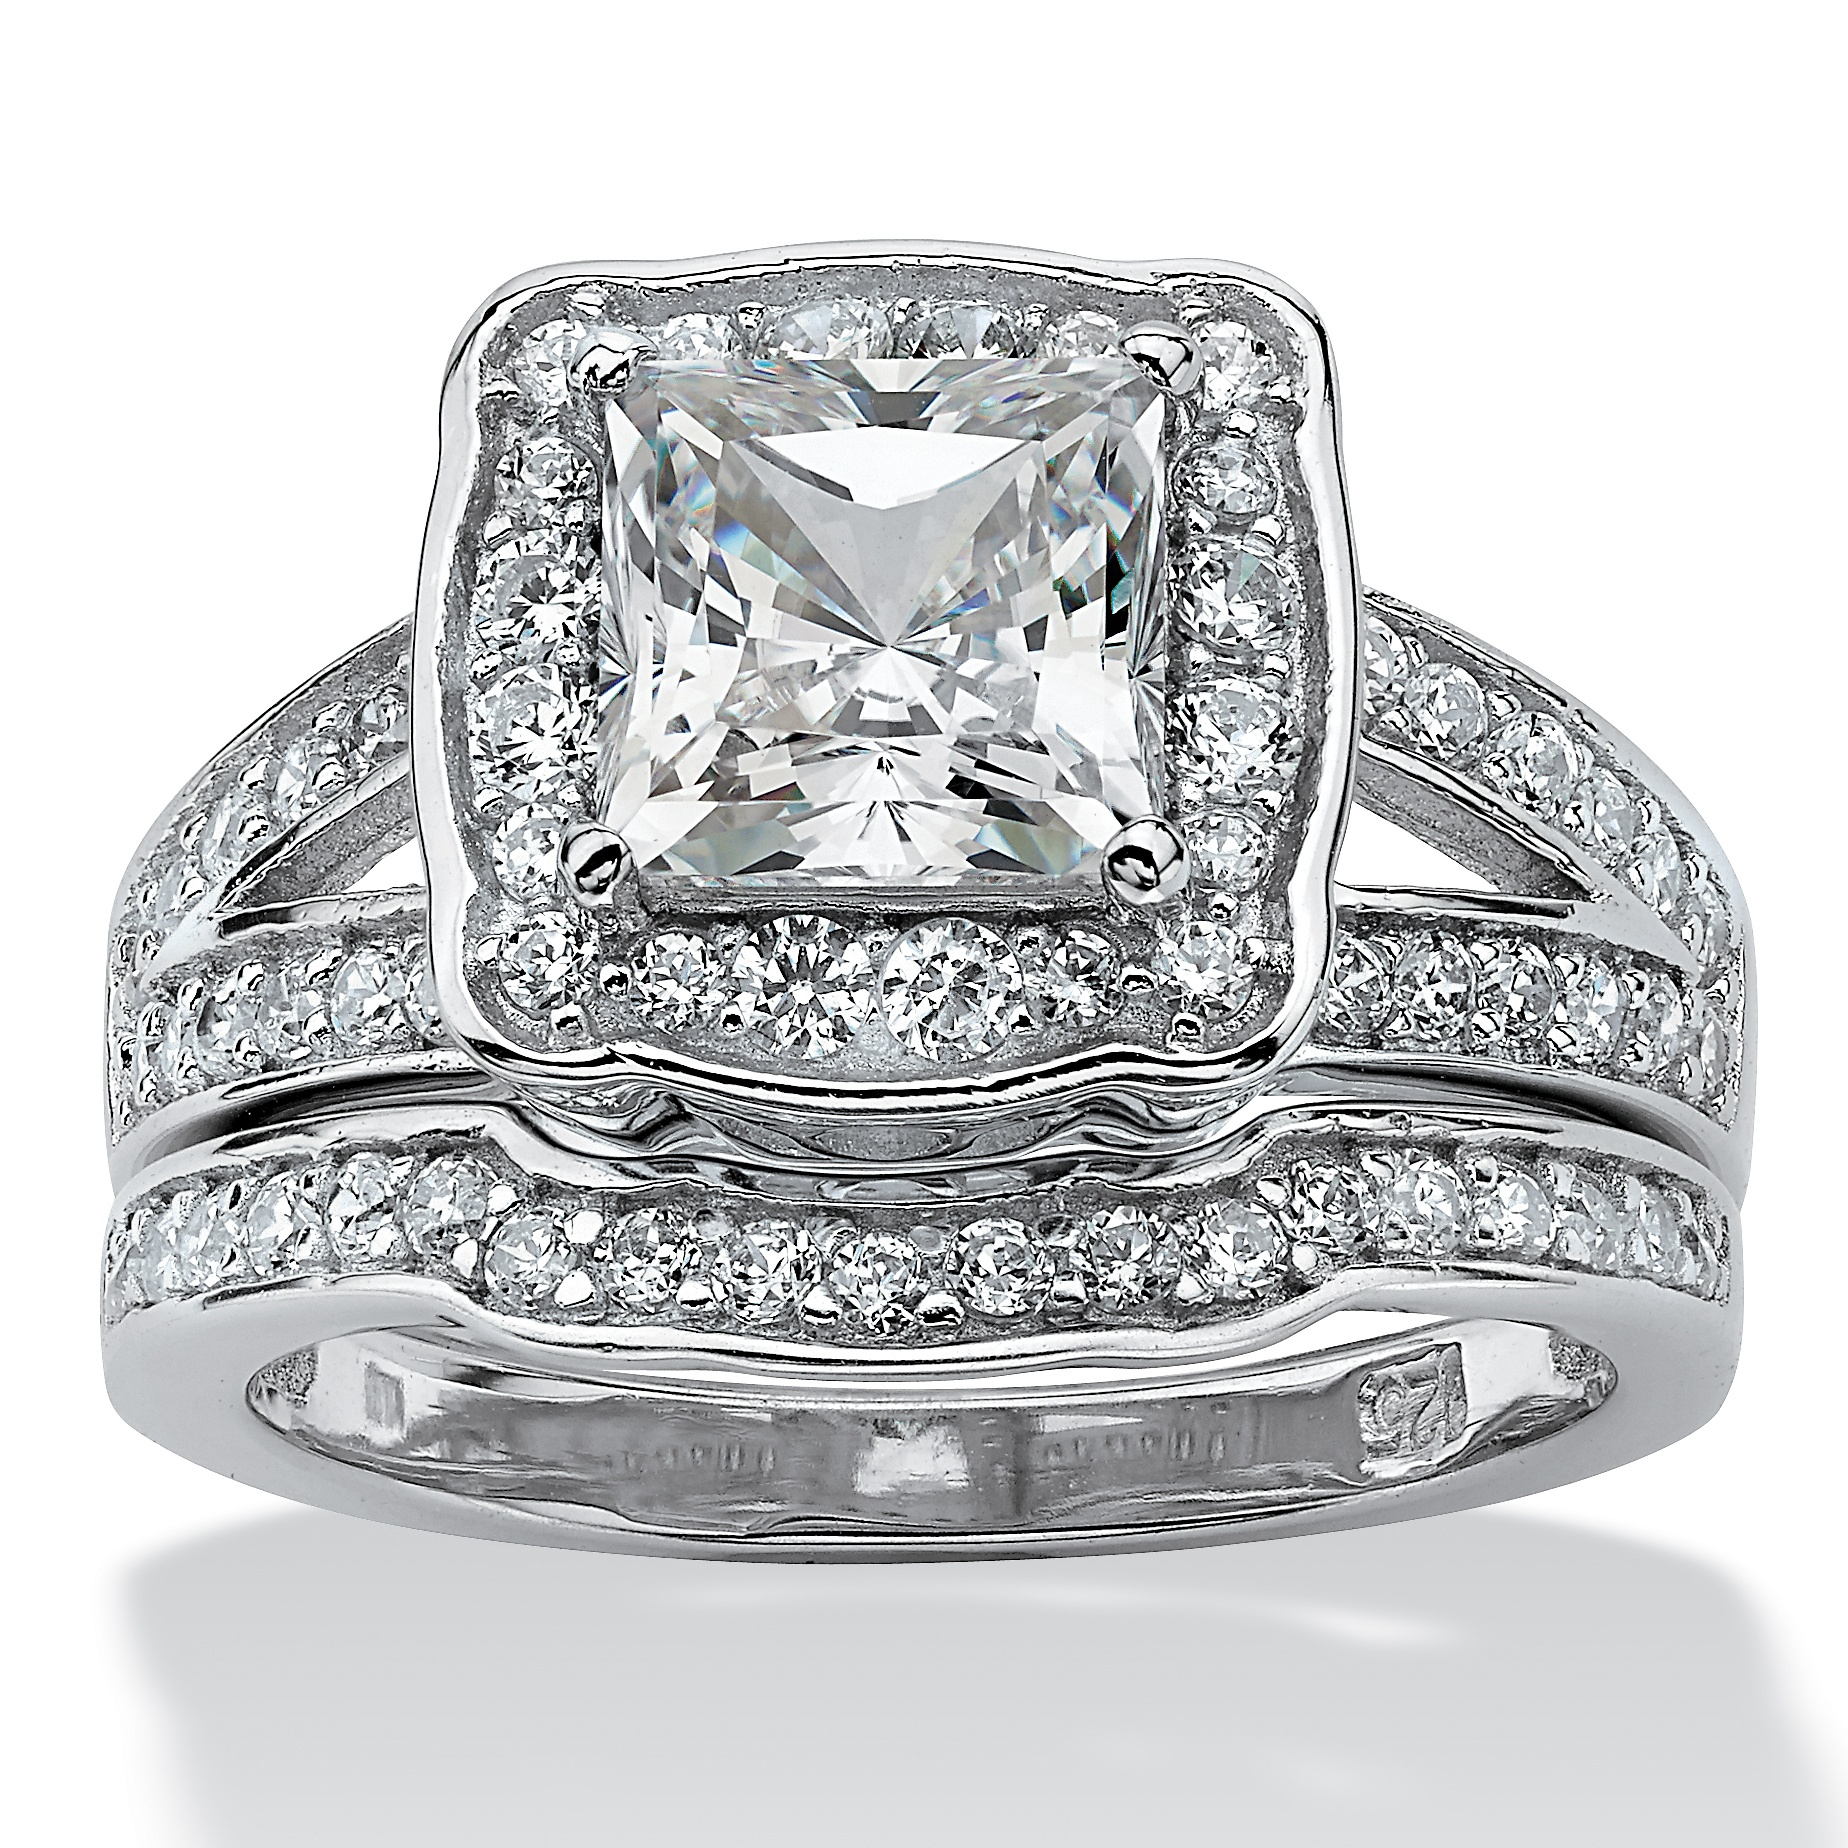 2.50 TCW Princess-Cut Cubic Zicronia 2-Piece Bridal Ring Set in Platinum over Sterling Silver